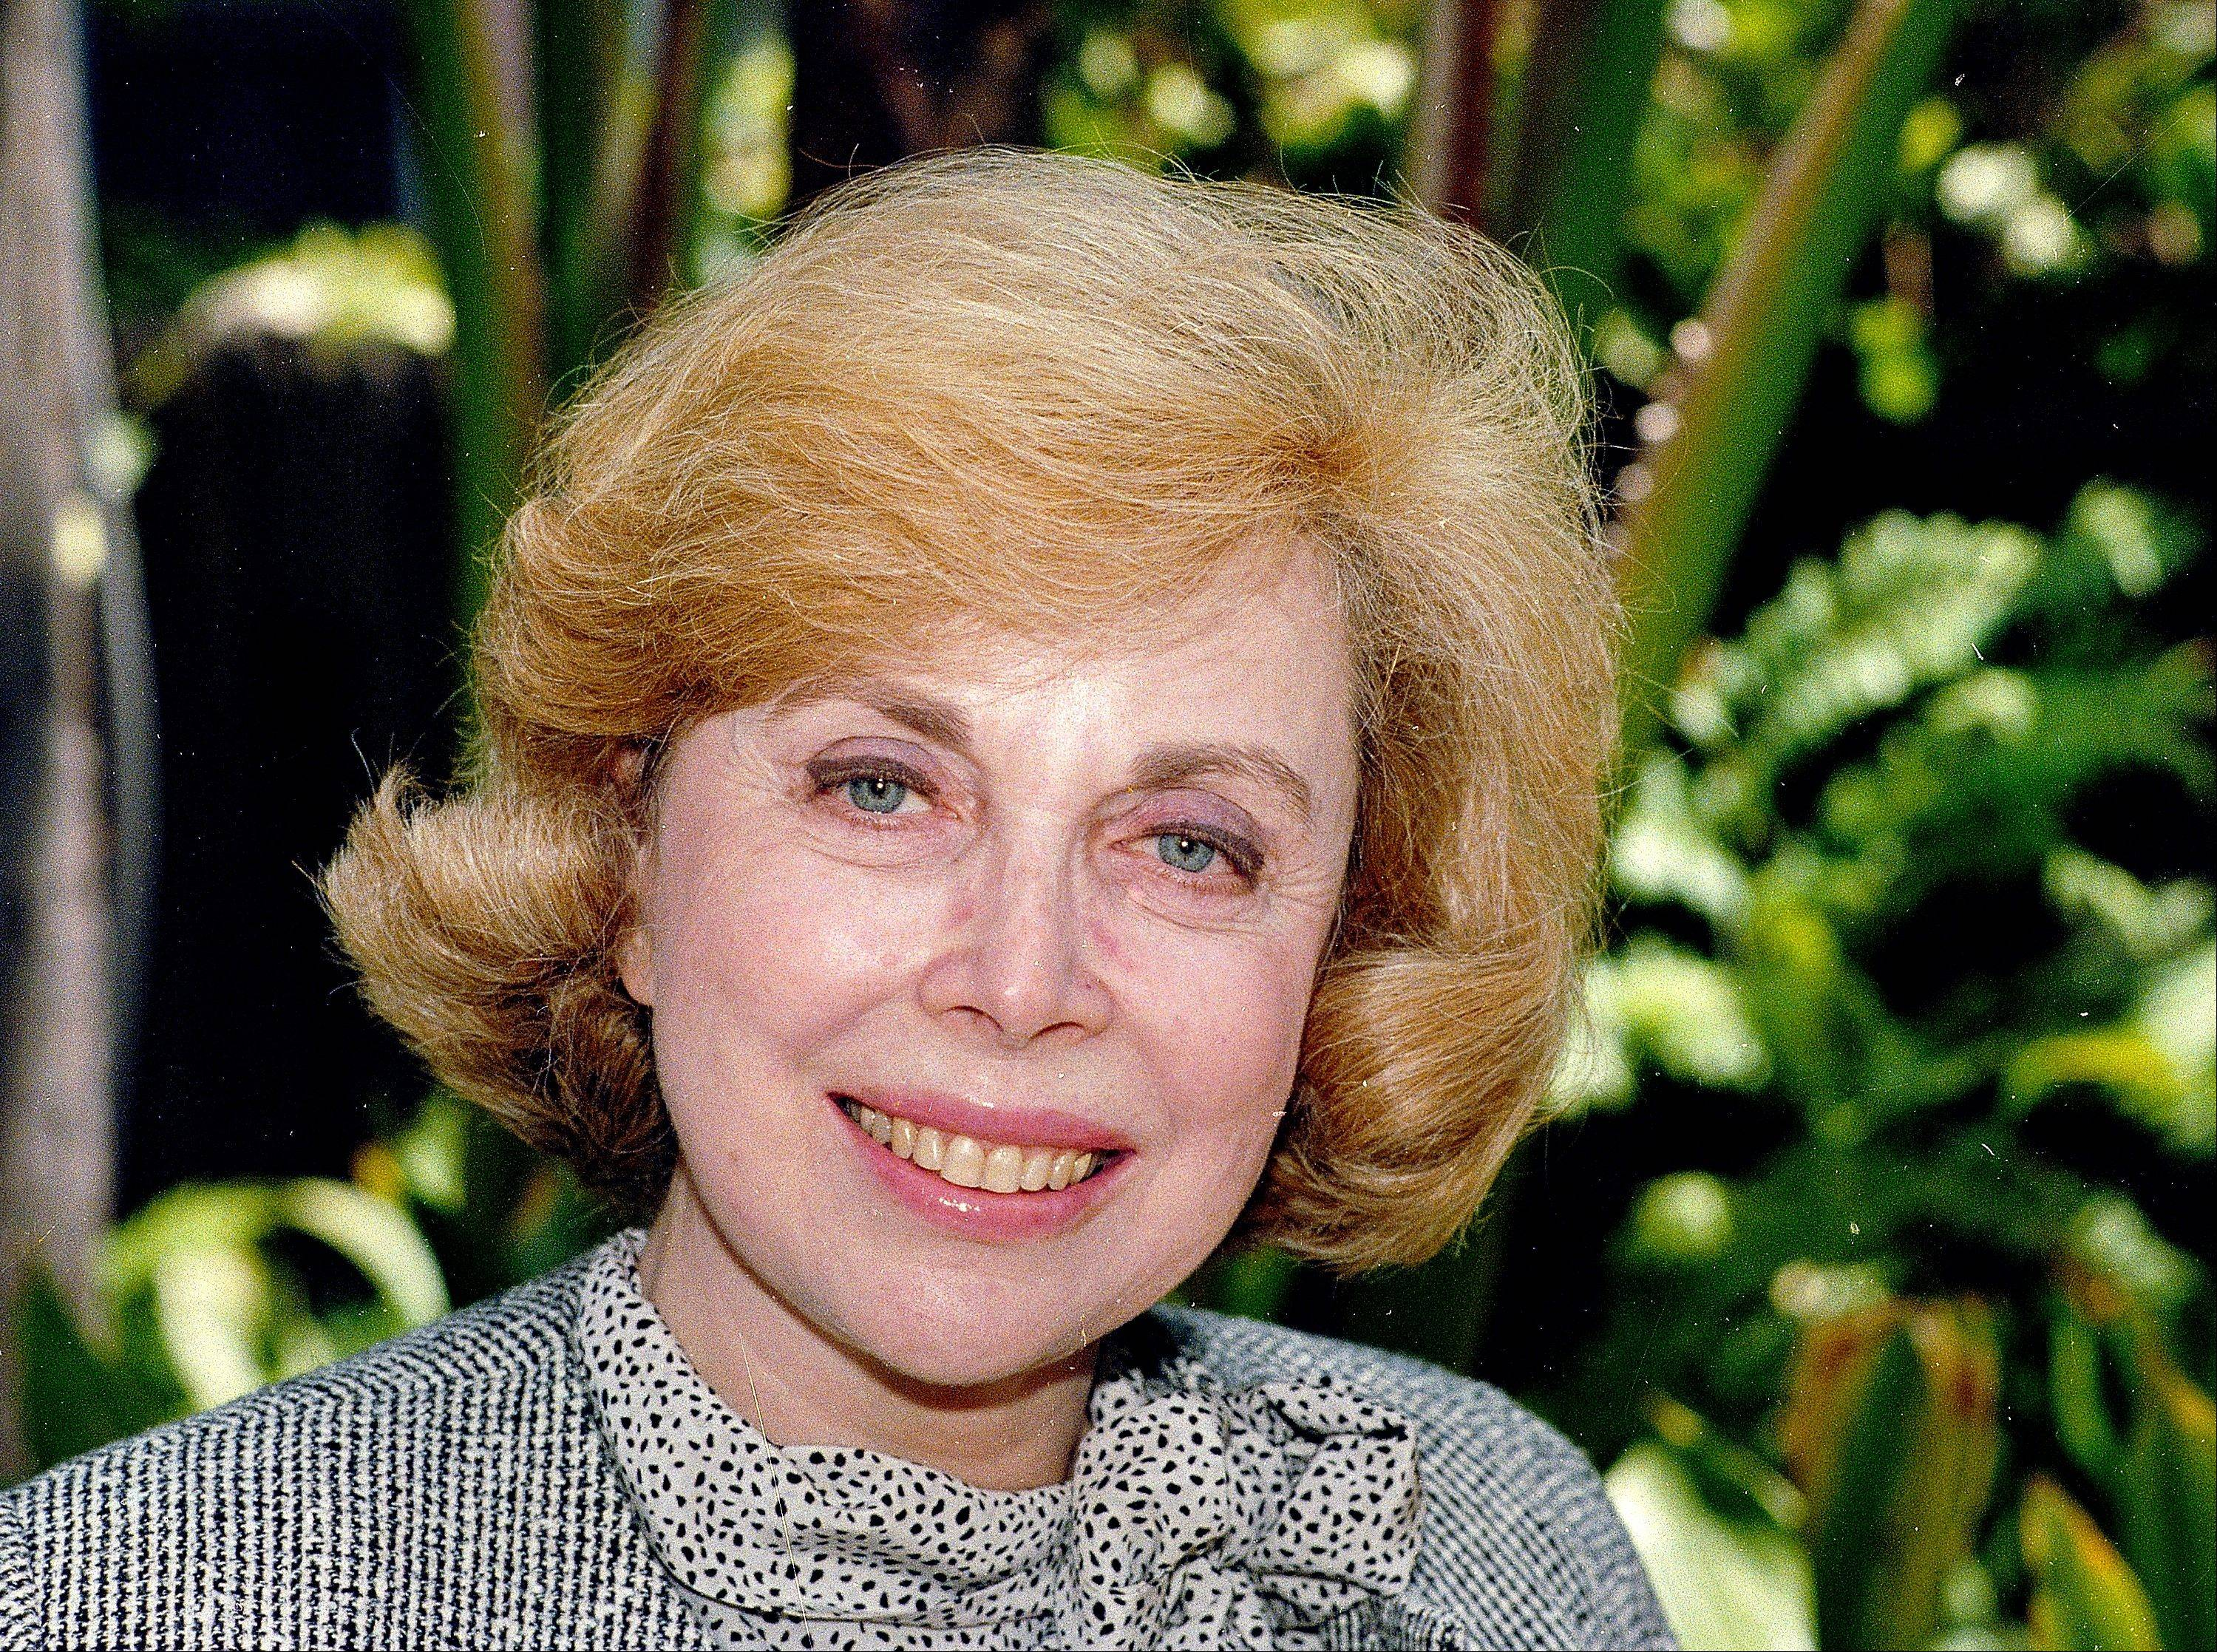 In this Sept. 1, 1987 file photo, Dr. Joyce Brothers takes a break from a busy schedule in Los Angeles to talk about her upcoming television series, �The Psychology Behind the News.� Brothers died Monday, May 13, 2013, in New York City, according to publicist Sanford Brokaw. She was 85.